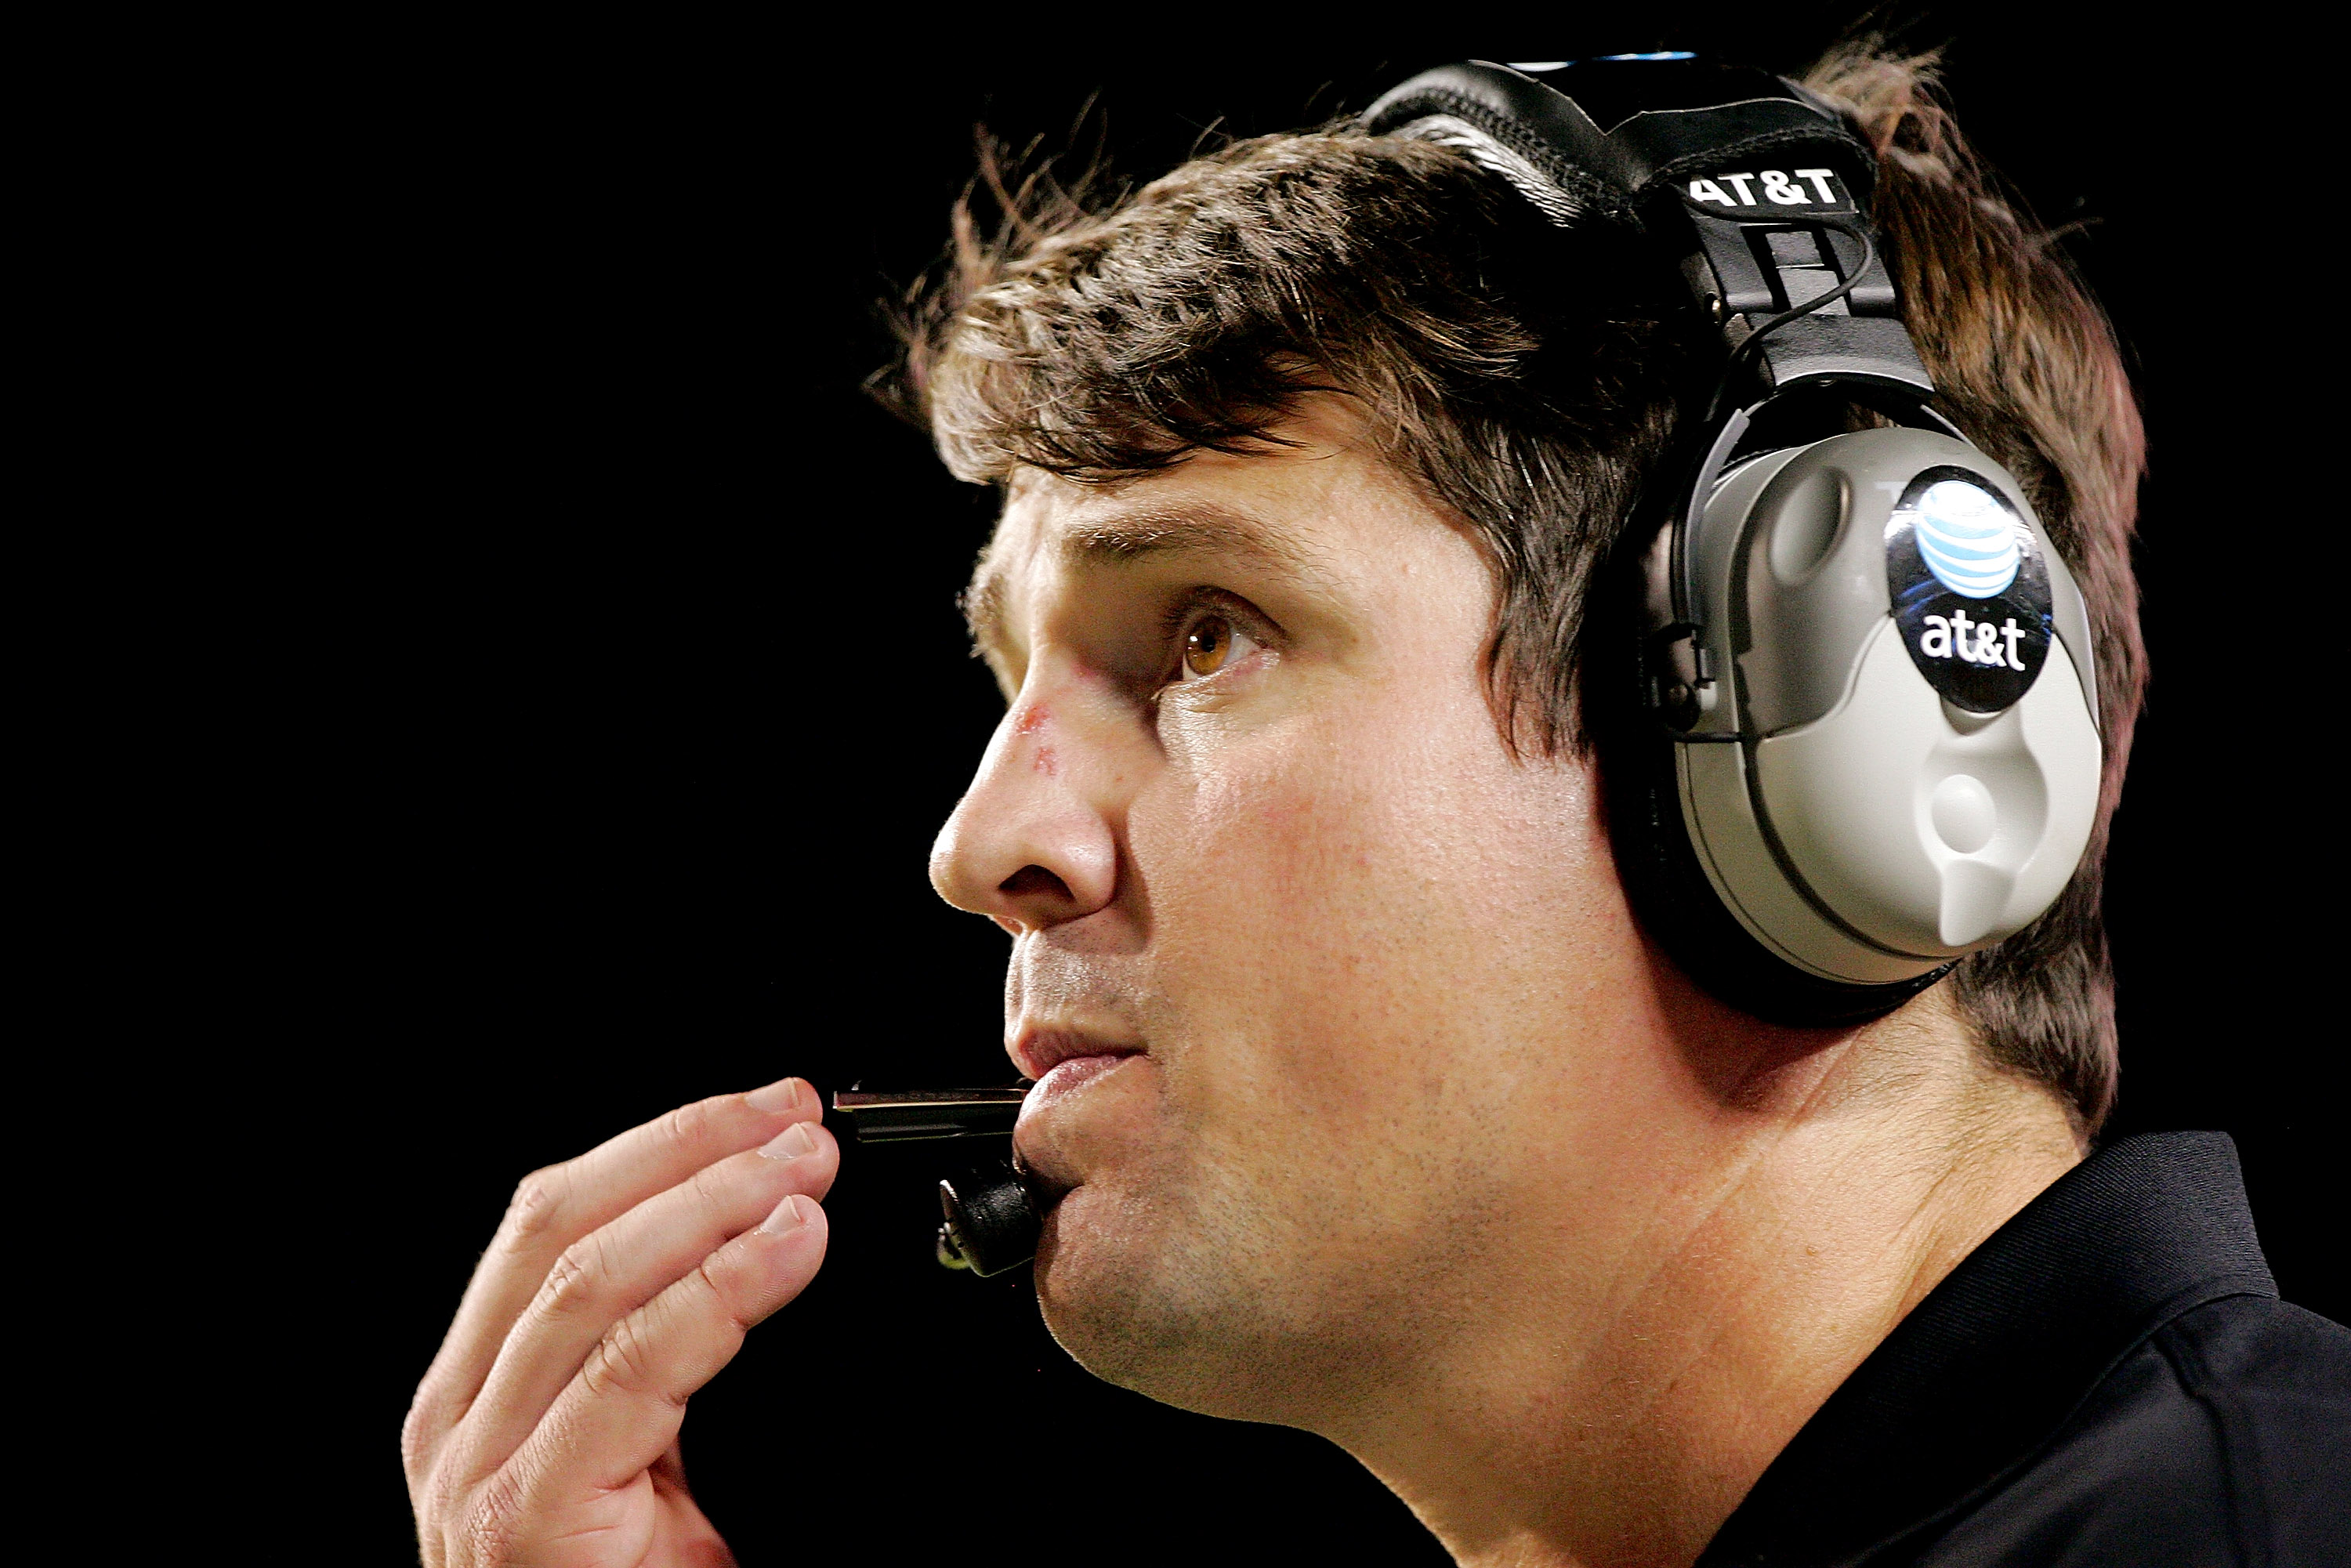 AUSTIN, TX - OCTOBER 18: Defensive coordinator Will Muschamp of the Texas Longhorns works from the sideline against the Missouri Tigers in the fourth quarter on October 18, 2008 at Darrell K Royal-Texas Memorial Stadium in Austin, Texas. Texas won 56-31.